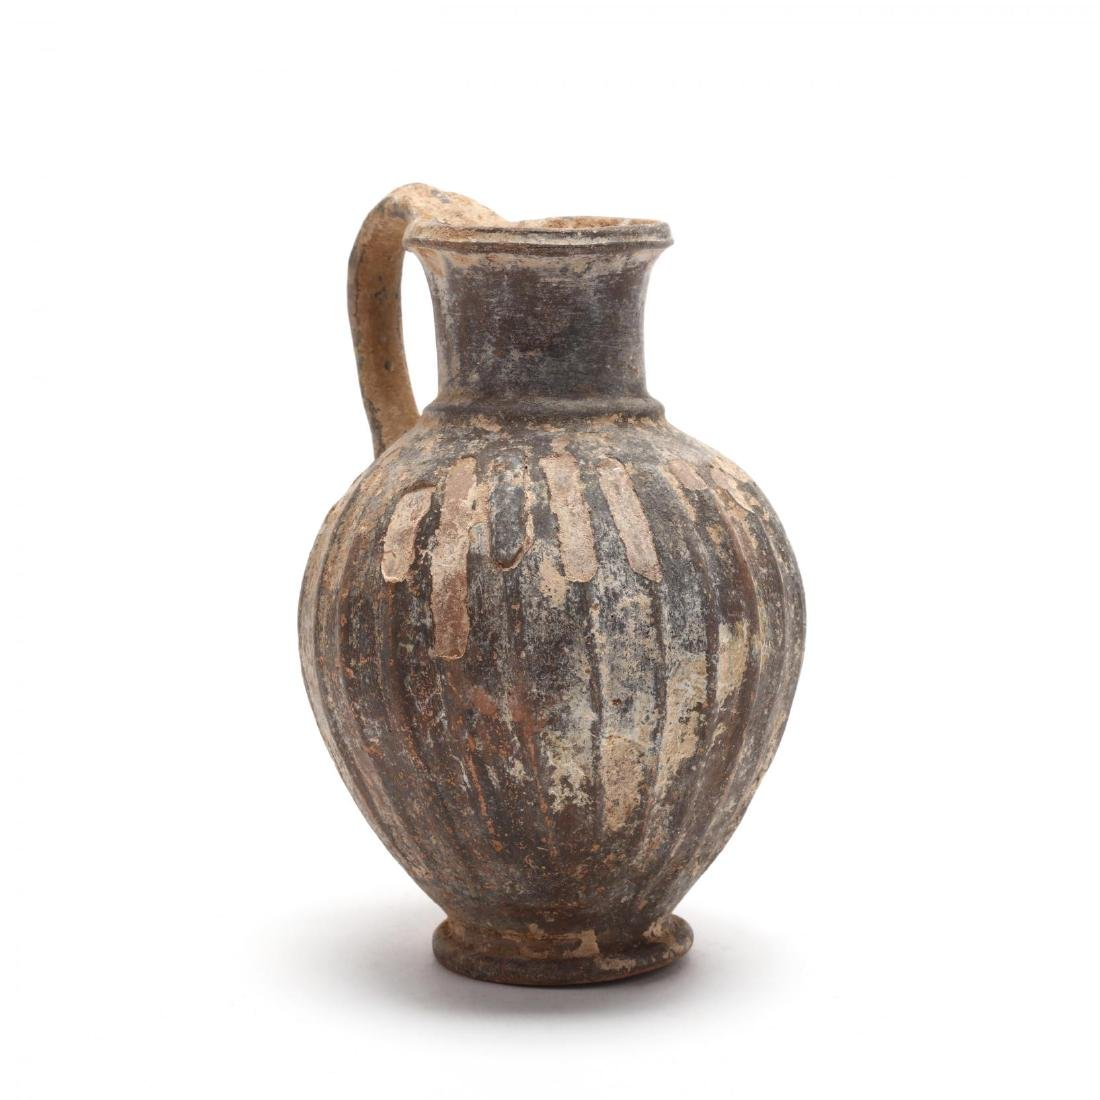 Cypriot Late Bronze Age Jug